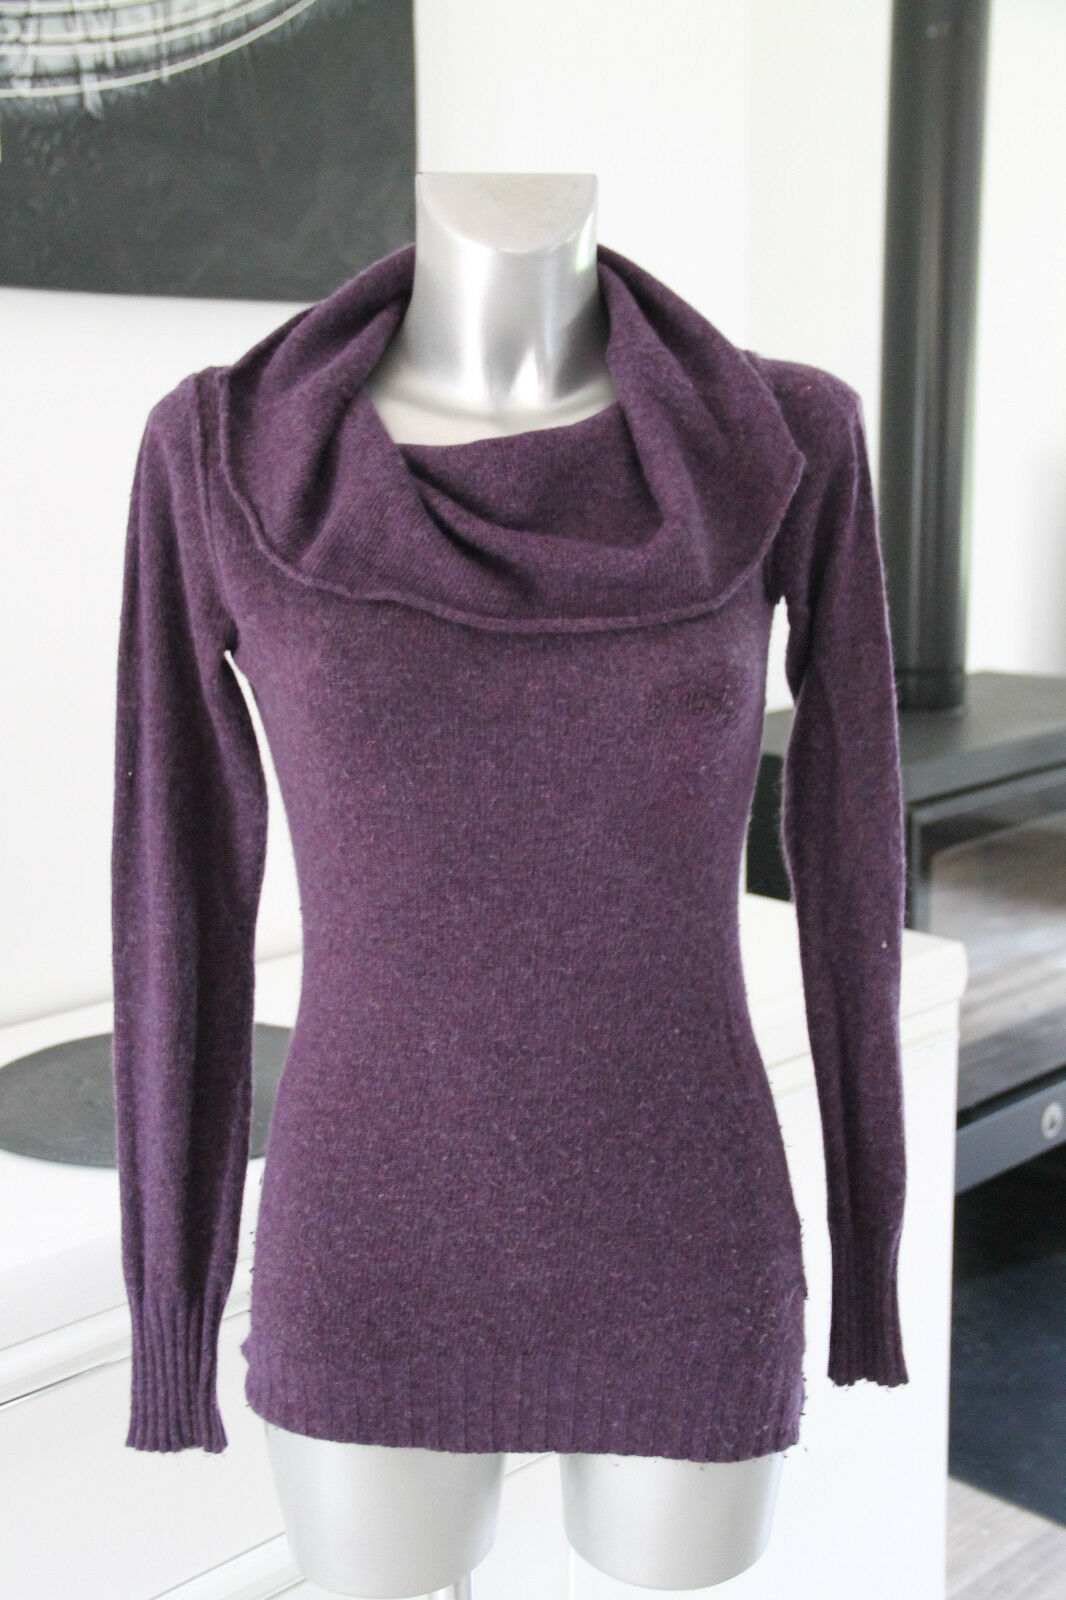 Nice sweater col wide wool angora purple KAPORAL yael Size XS for women